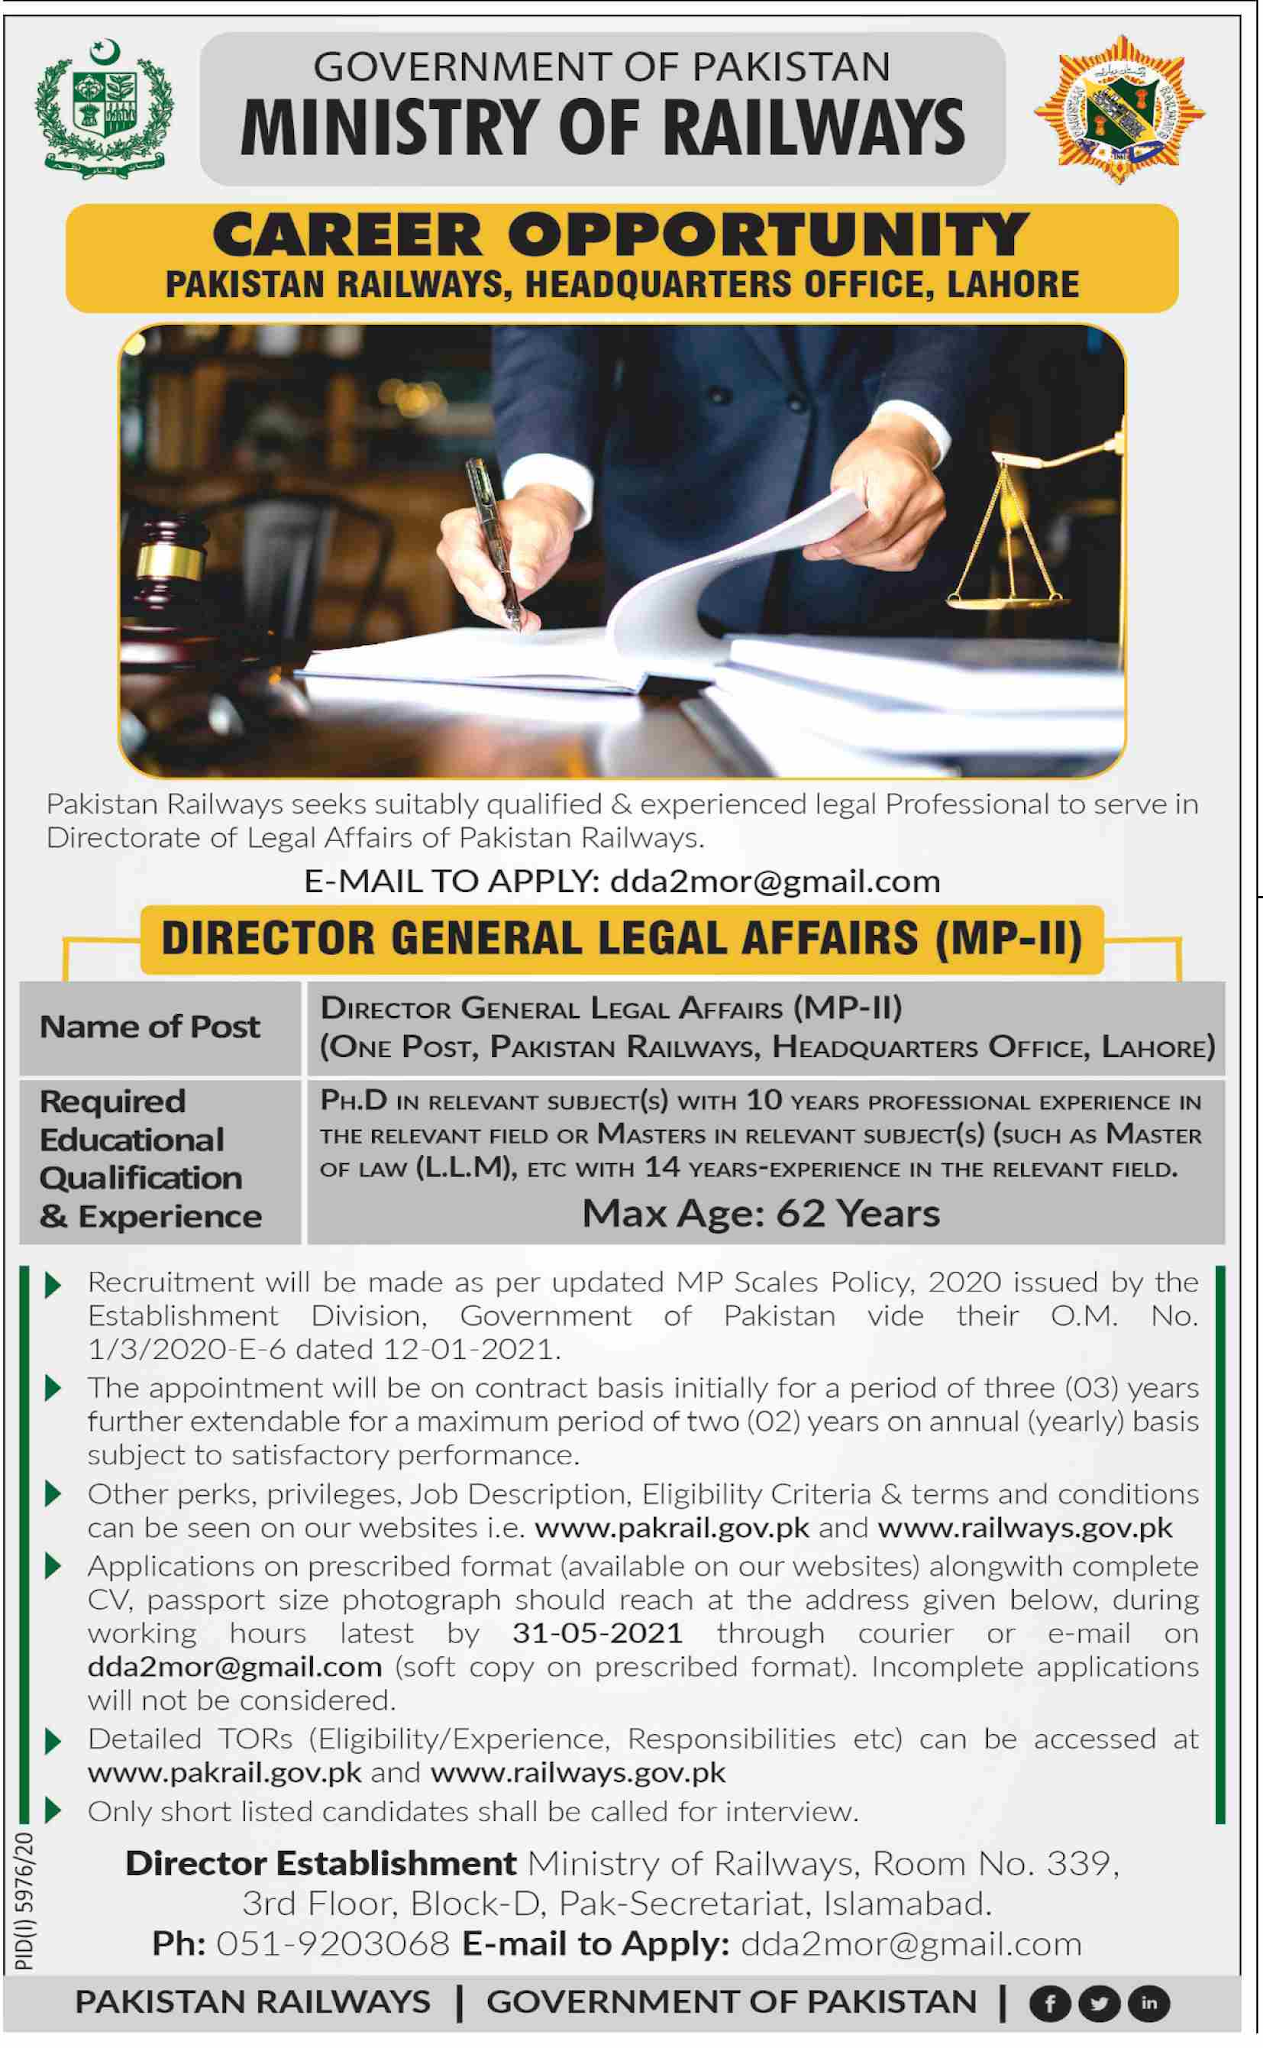 This page is about Pakistan Railways Jobs May 2021 Latest Advertisment. Pakistan Railways invites applications for the posts announced on a contact / permanent basis from suitable candidates for the following positions such as Director General Legal Affairs (MP-II). These vacancies are published in Dawn Newspaper, one of the best News paper of Pakistan. This advertisement has pulibhsed on 01 May 2021 and Last Date to apply is 31 May 2021.